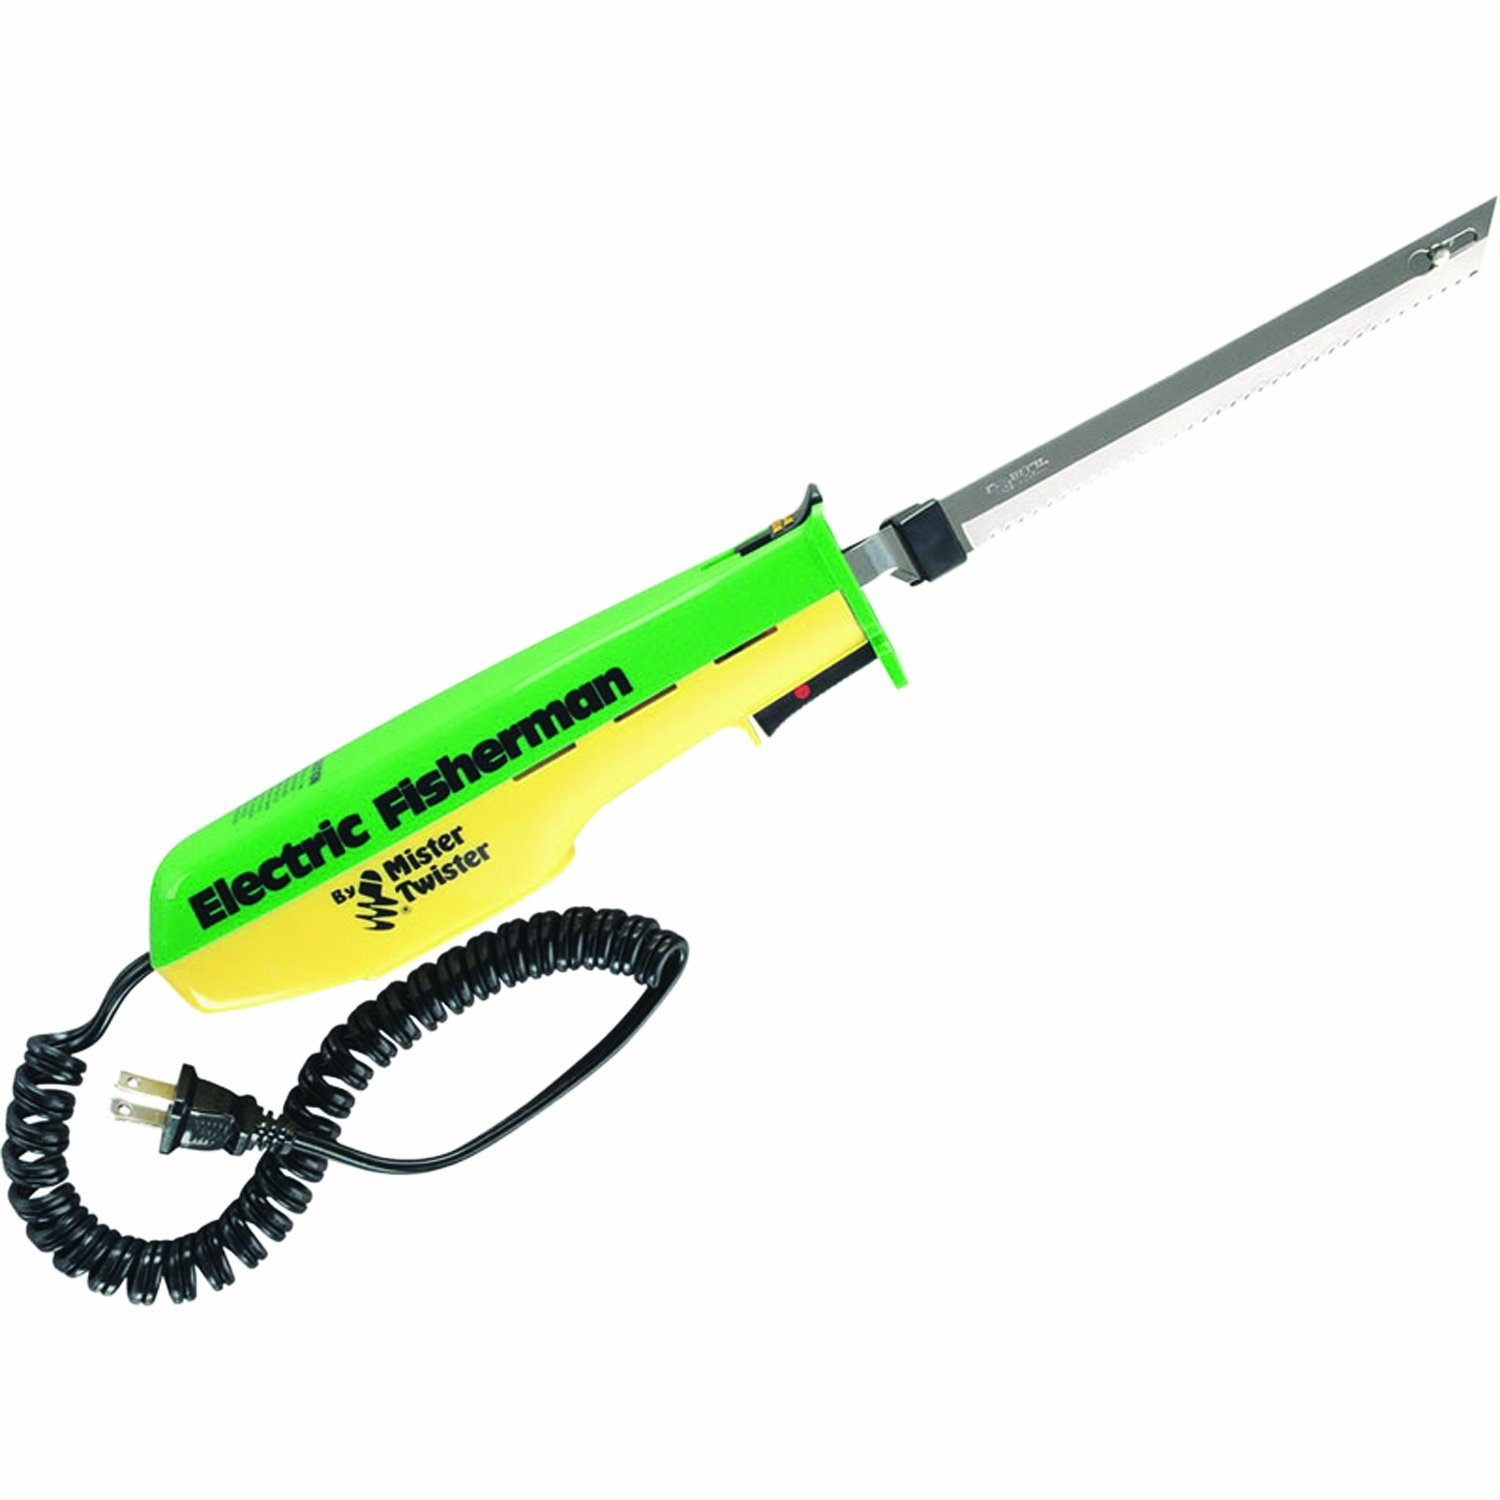 120V Electric Knife (Green Yellow), 120V GreenYellow Knife Electric By Mister Twister by